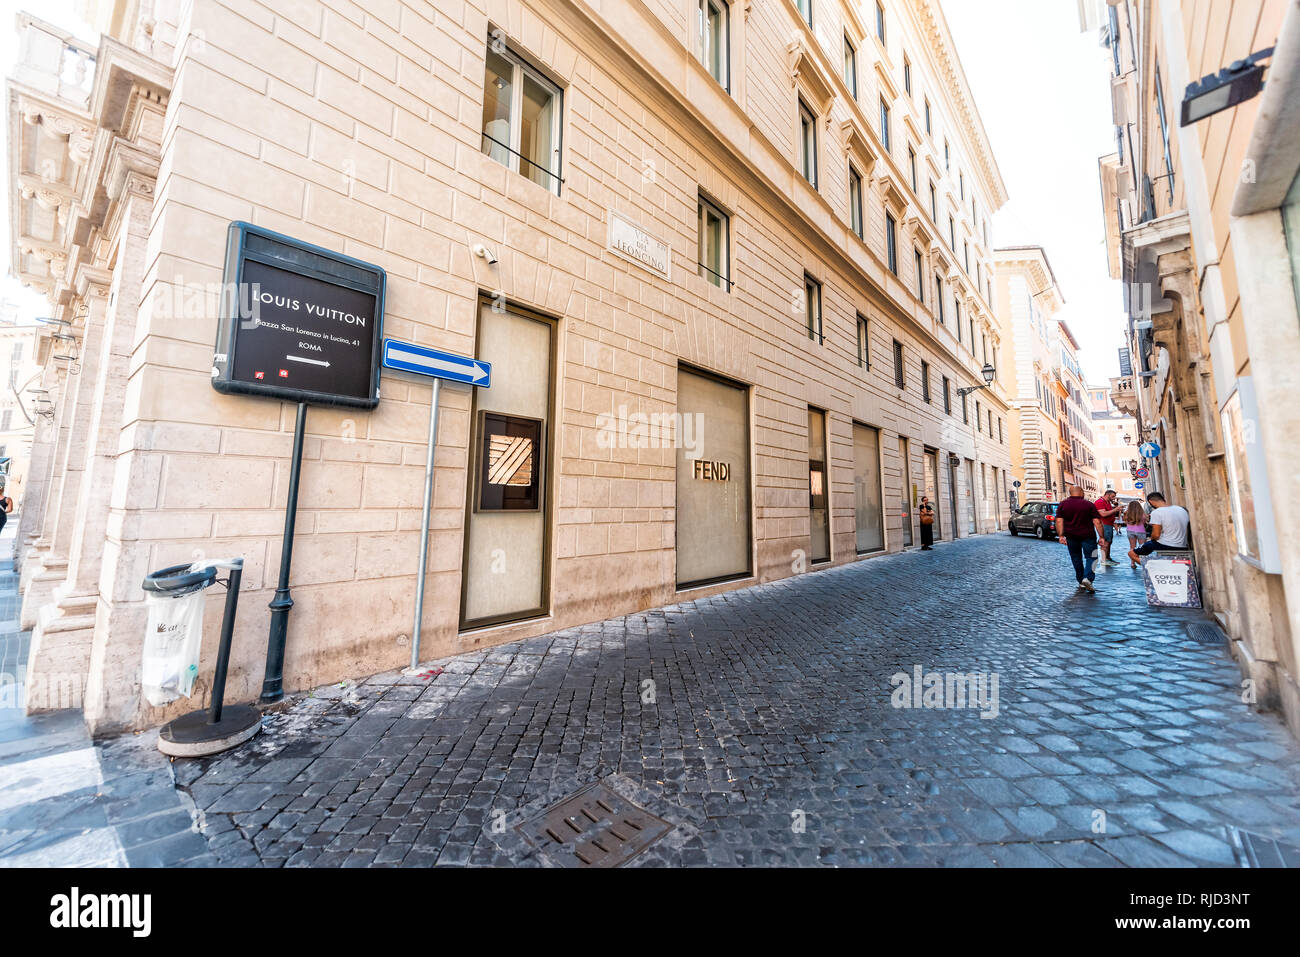 Rome, Italy - September 5, 2018: Italian street outside in historic city sunny day and sign for Louis Vuitton store on Via del Leoncino and Tomacelli  Stock Photo